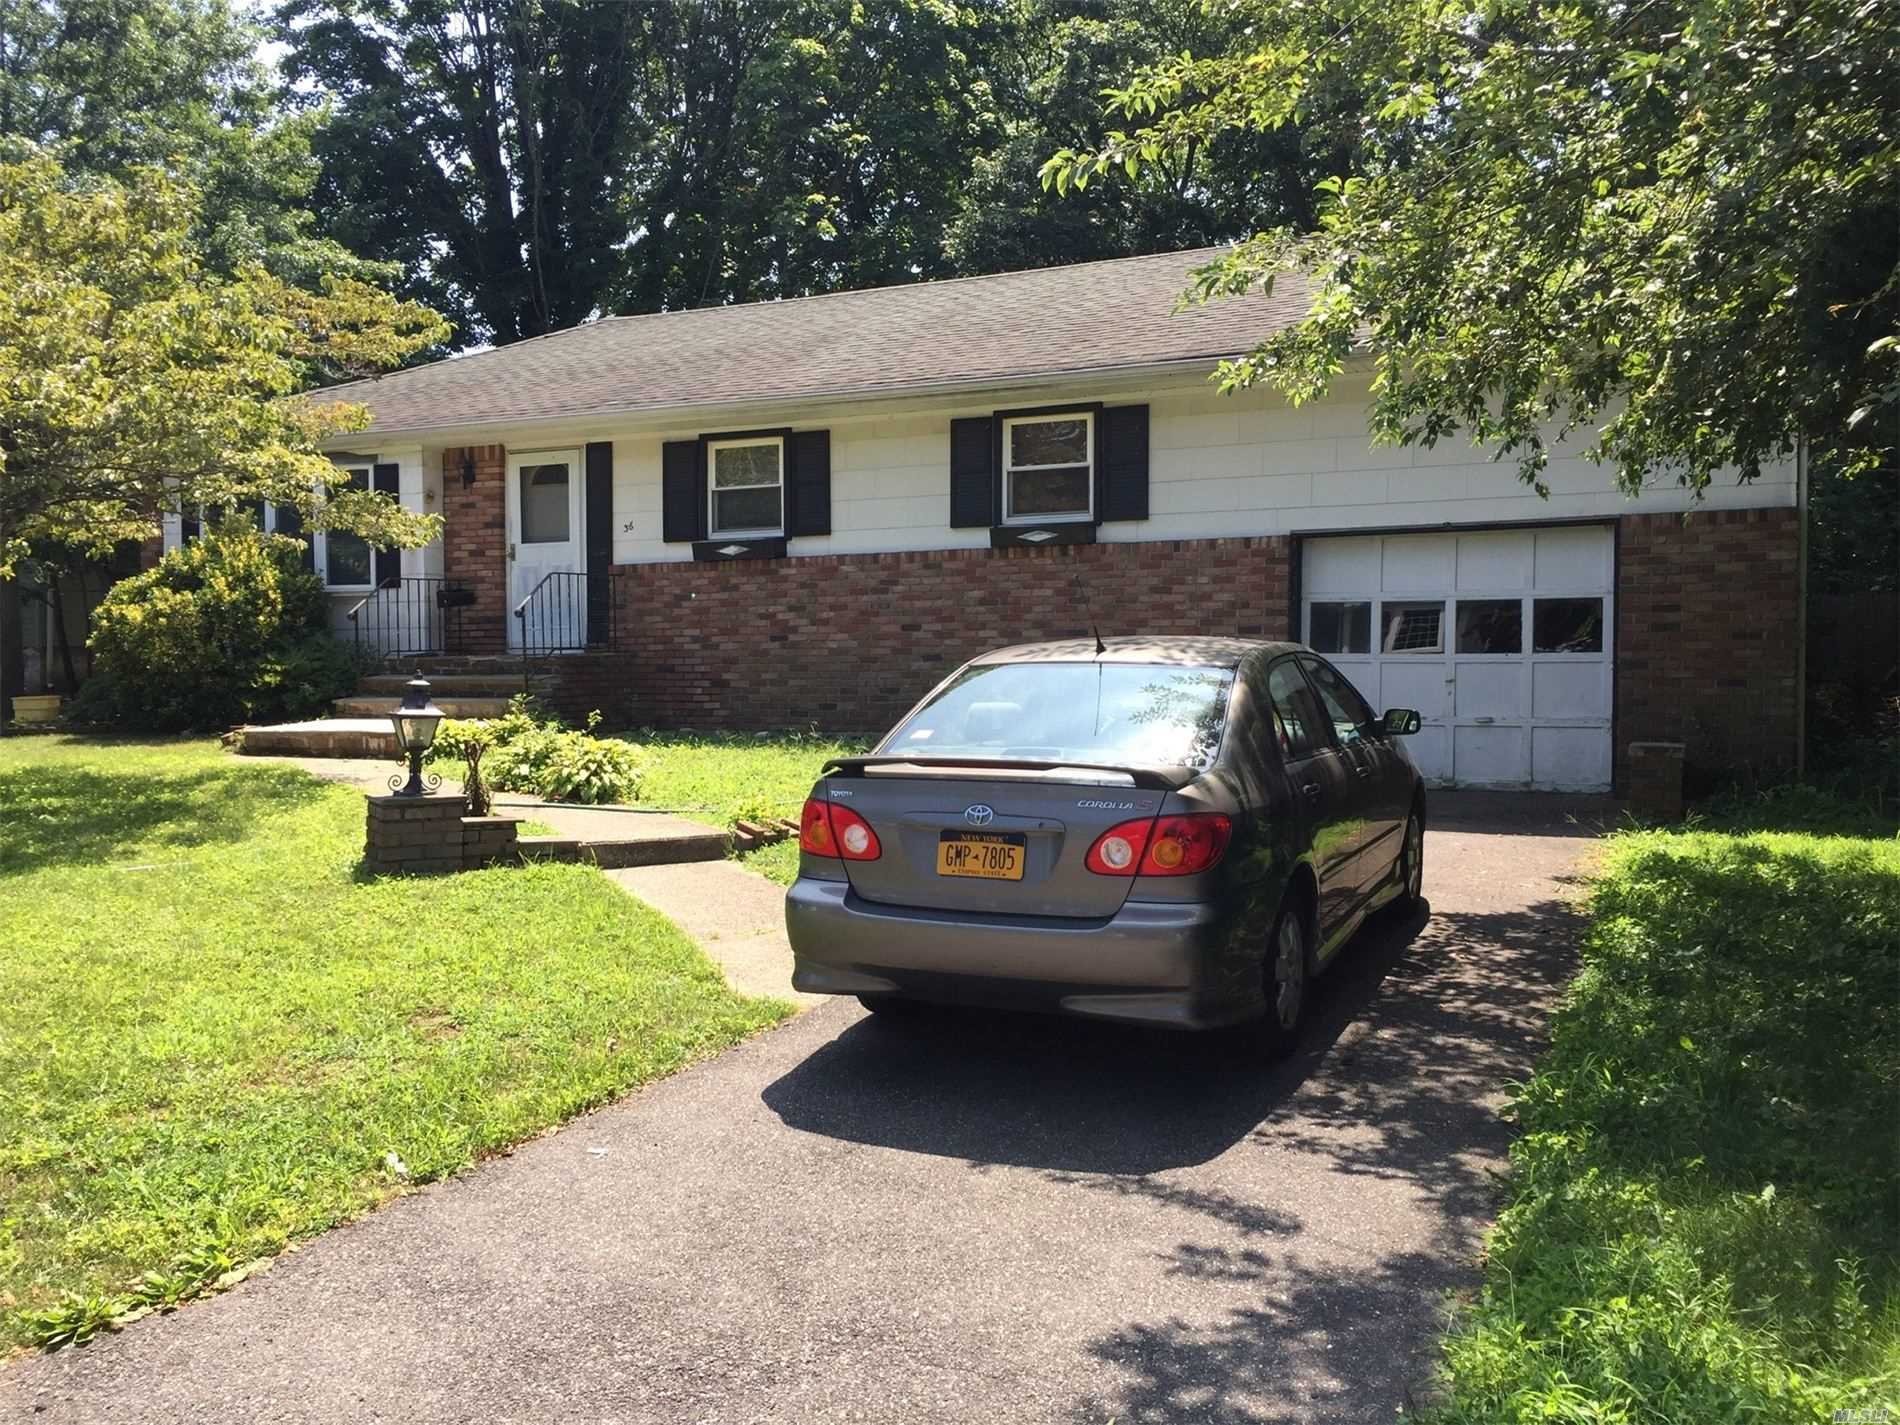 Location, Location, Location! 3 Br Wide Line Ranch on a Private Cul-de-sac with 1/4 Acre Deep Property (72x151). Formal Dr. Updated Kitchen & Bath. Hardwood Floors. Wide & Deep Garage. Huge Basement w/Separate entrance, just needs a Painting.